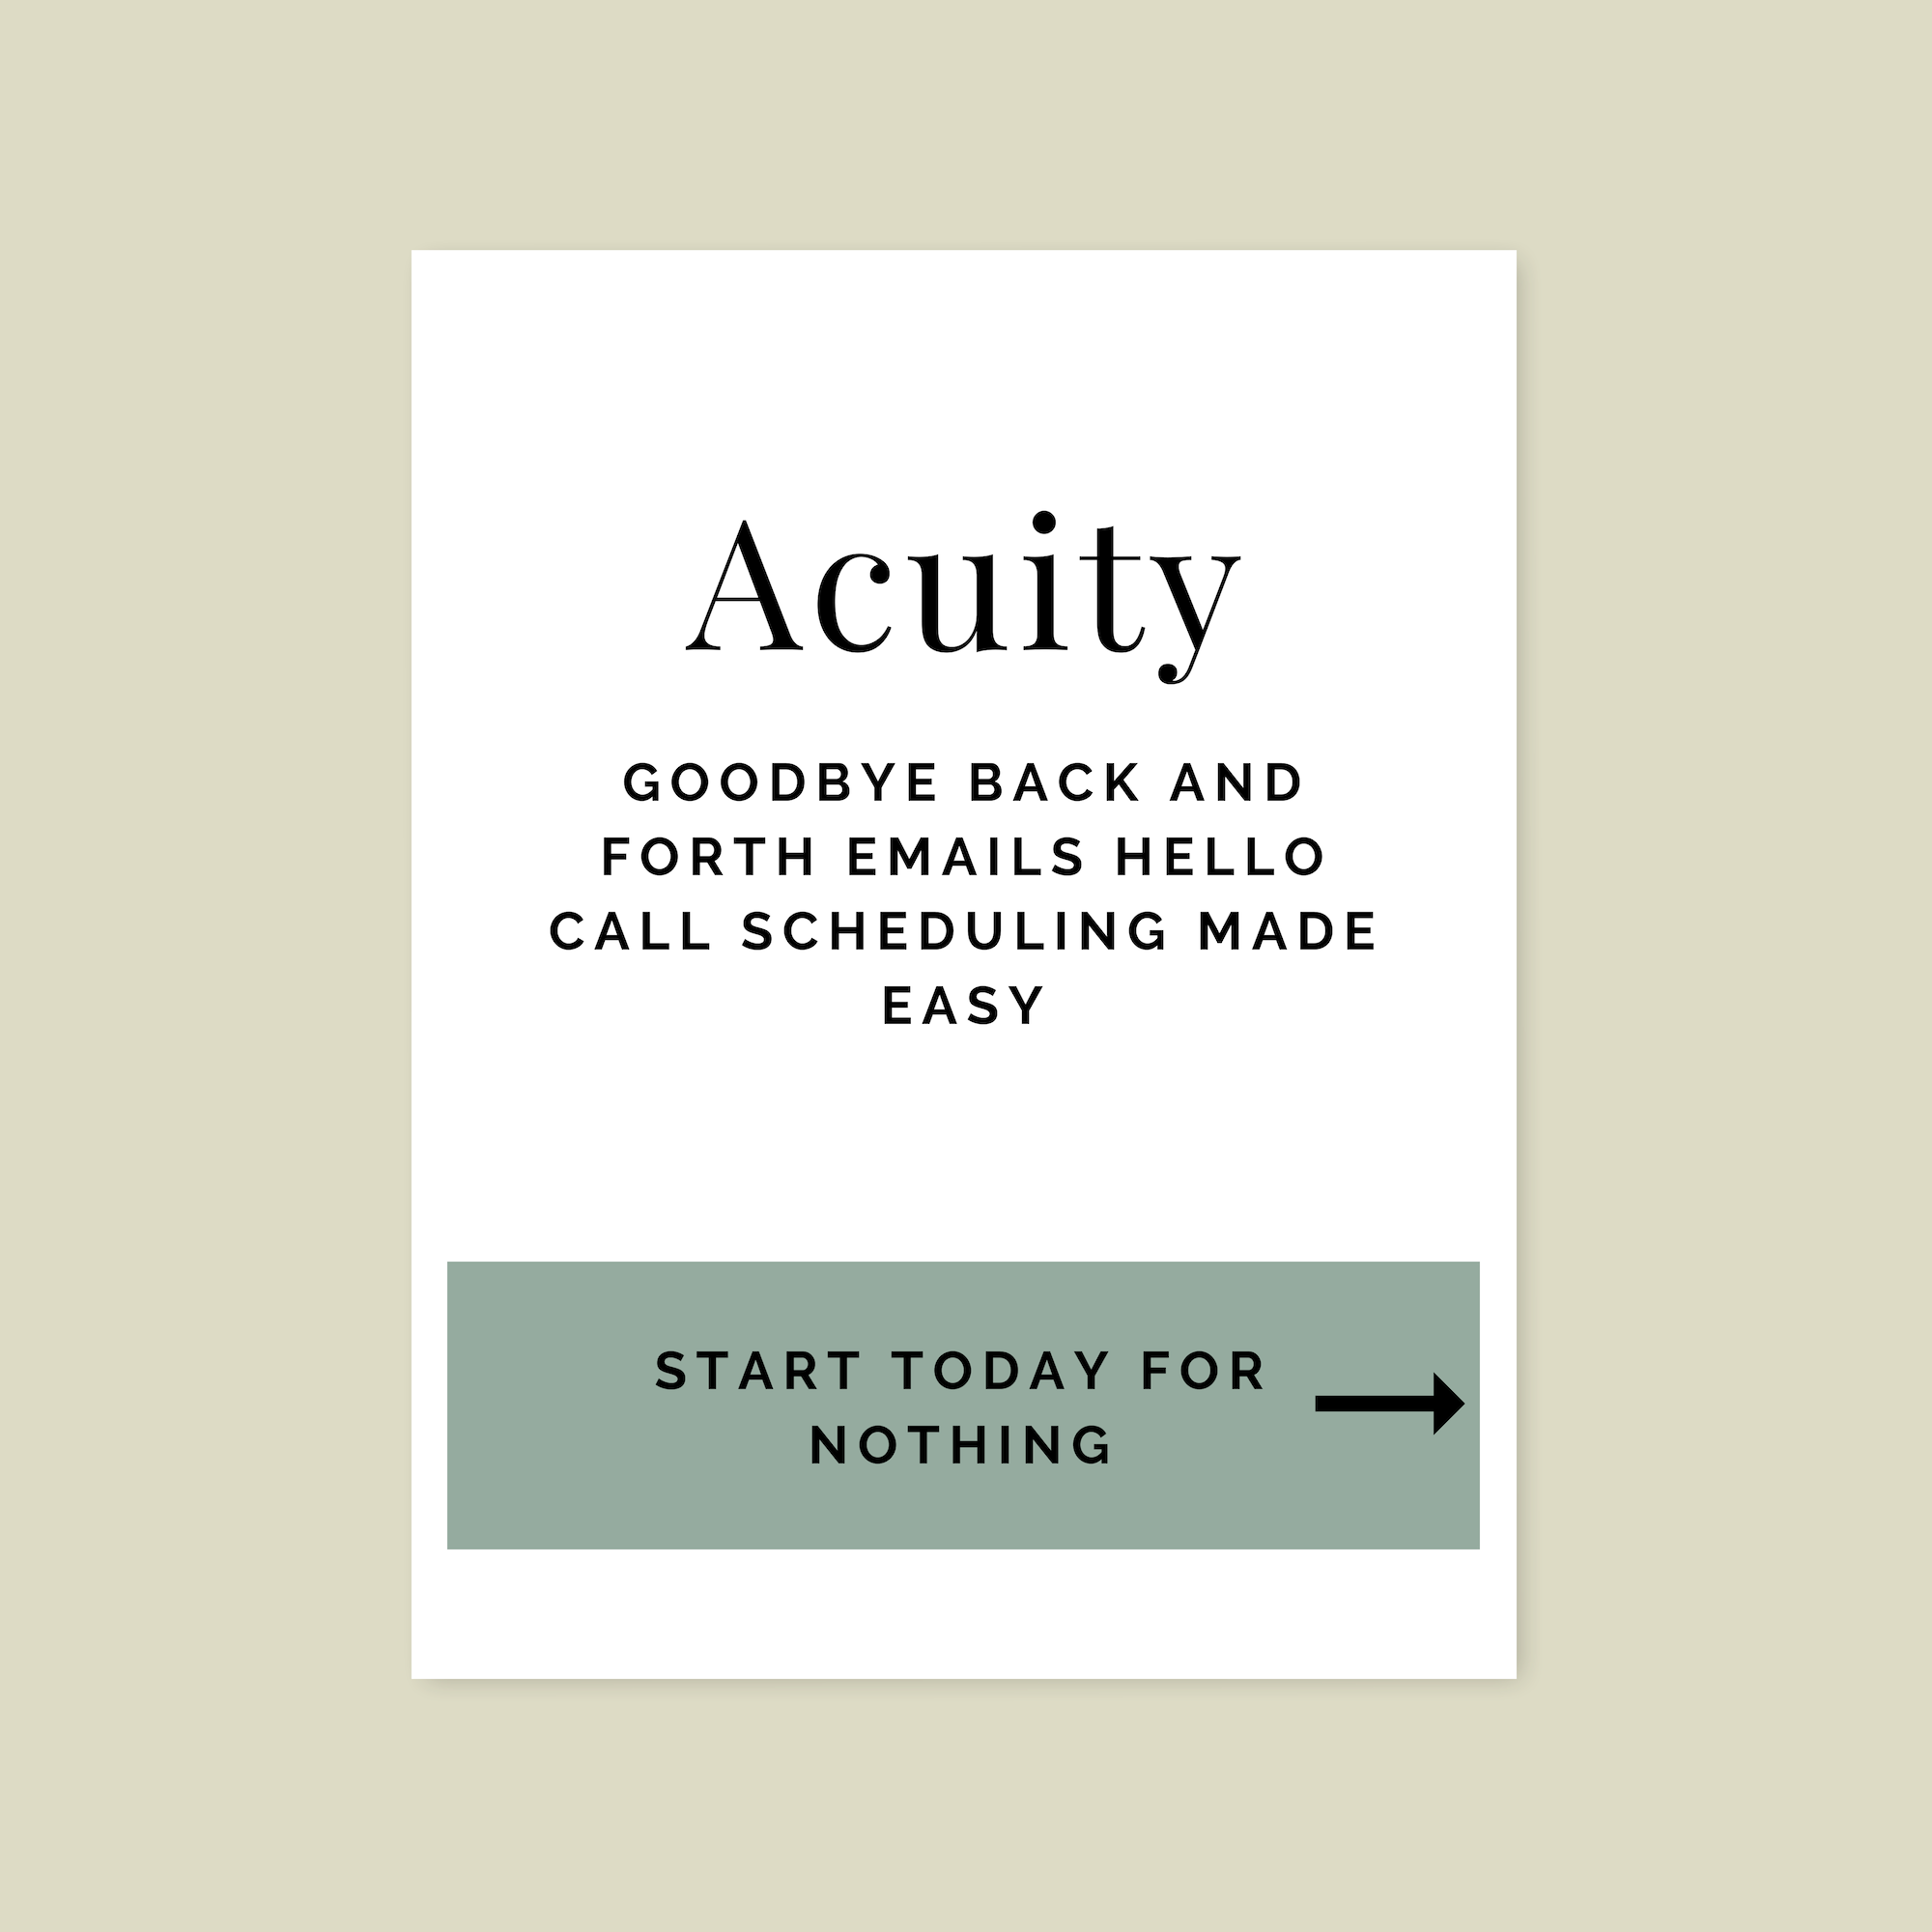 https://acuityscheduling.com/?kw=YToxNjAxNTQyNg%3D%3D